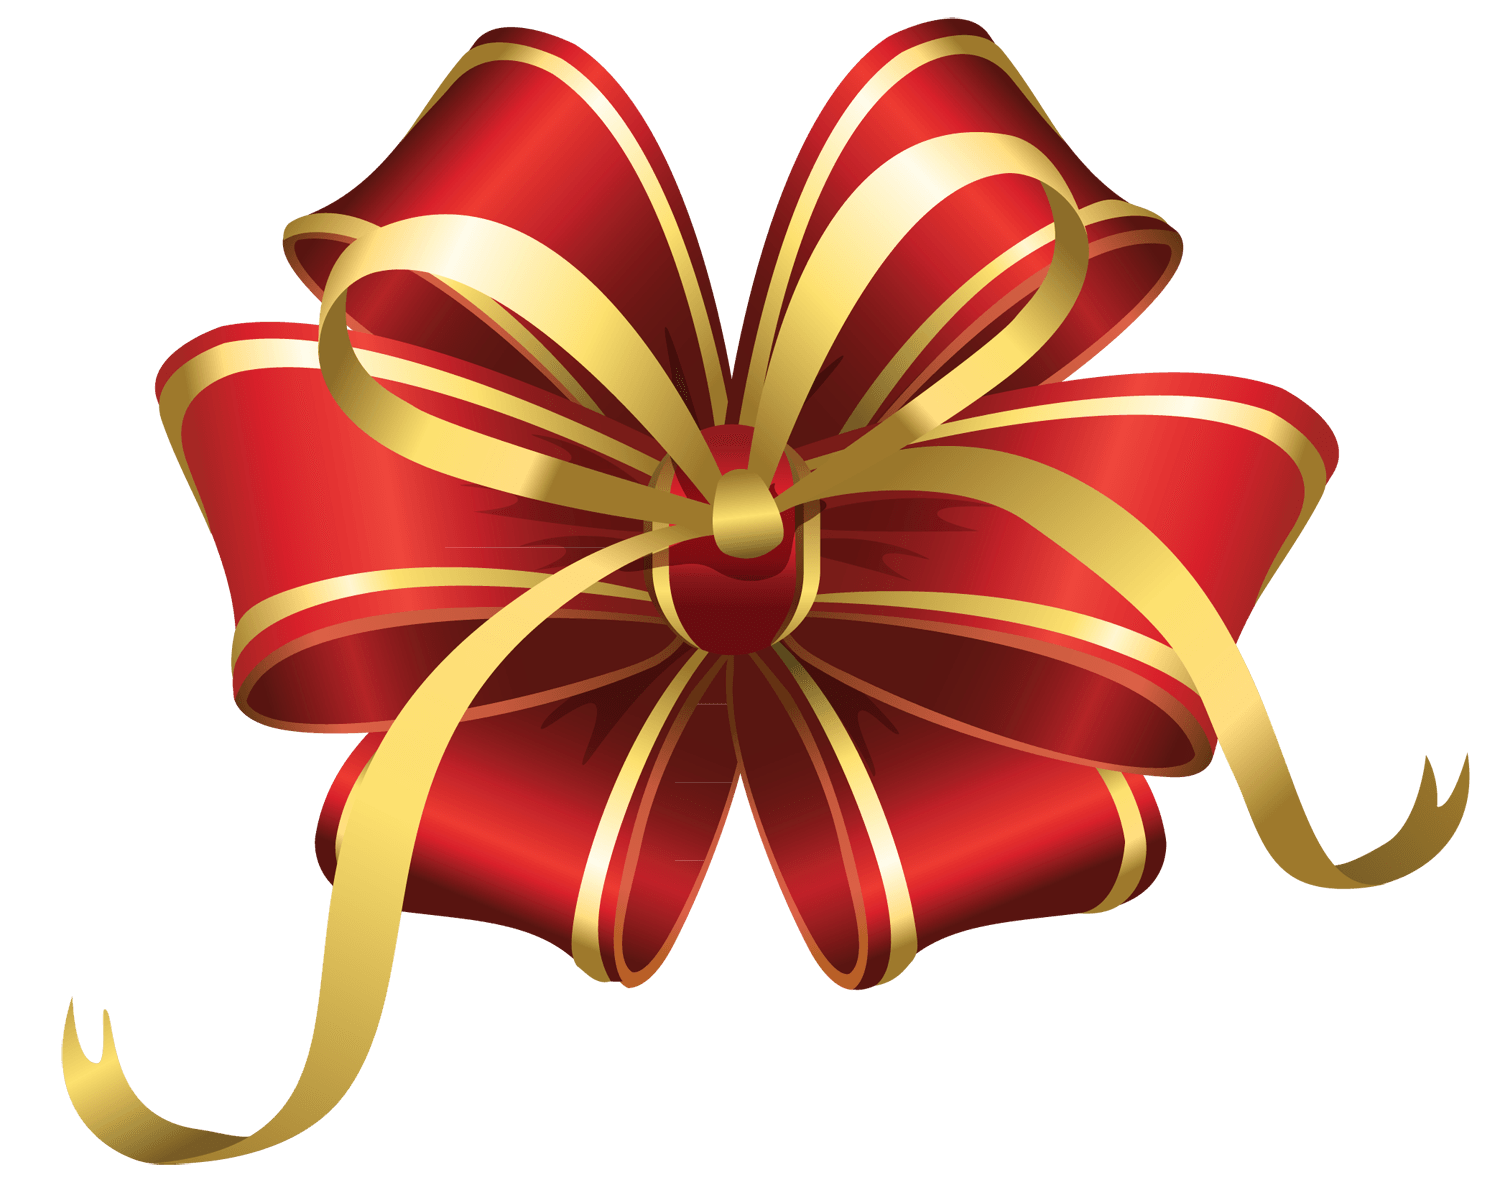 Red ball transparent stickpng. Christmas flower png